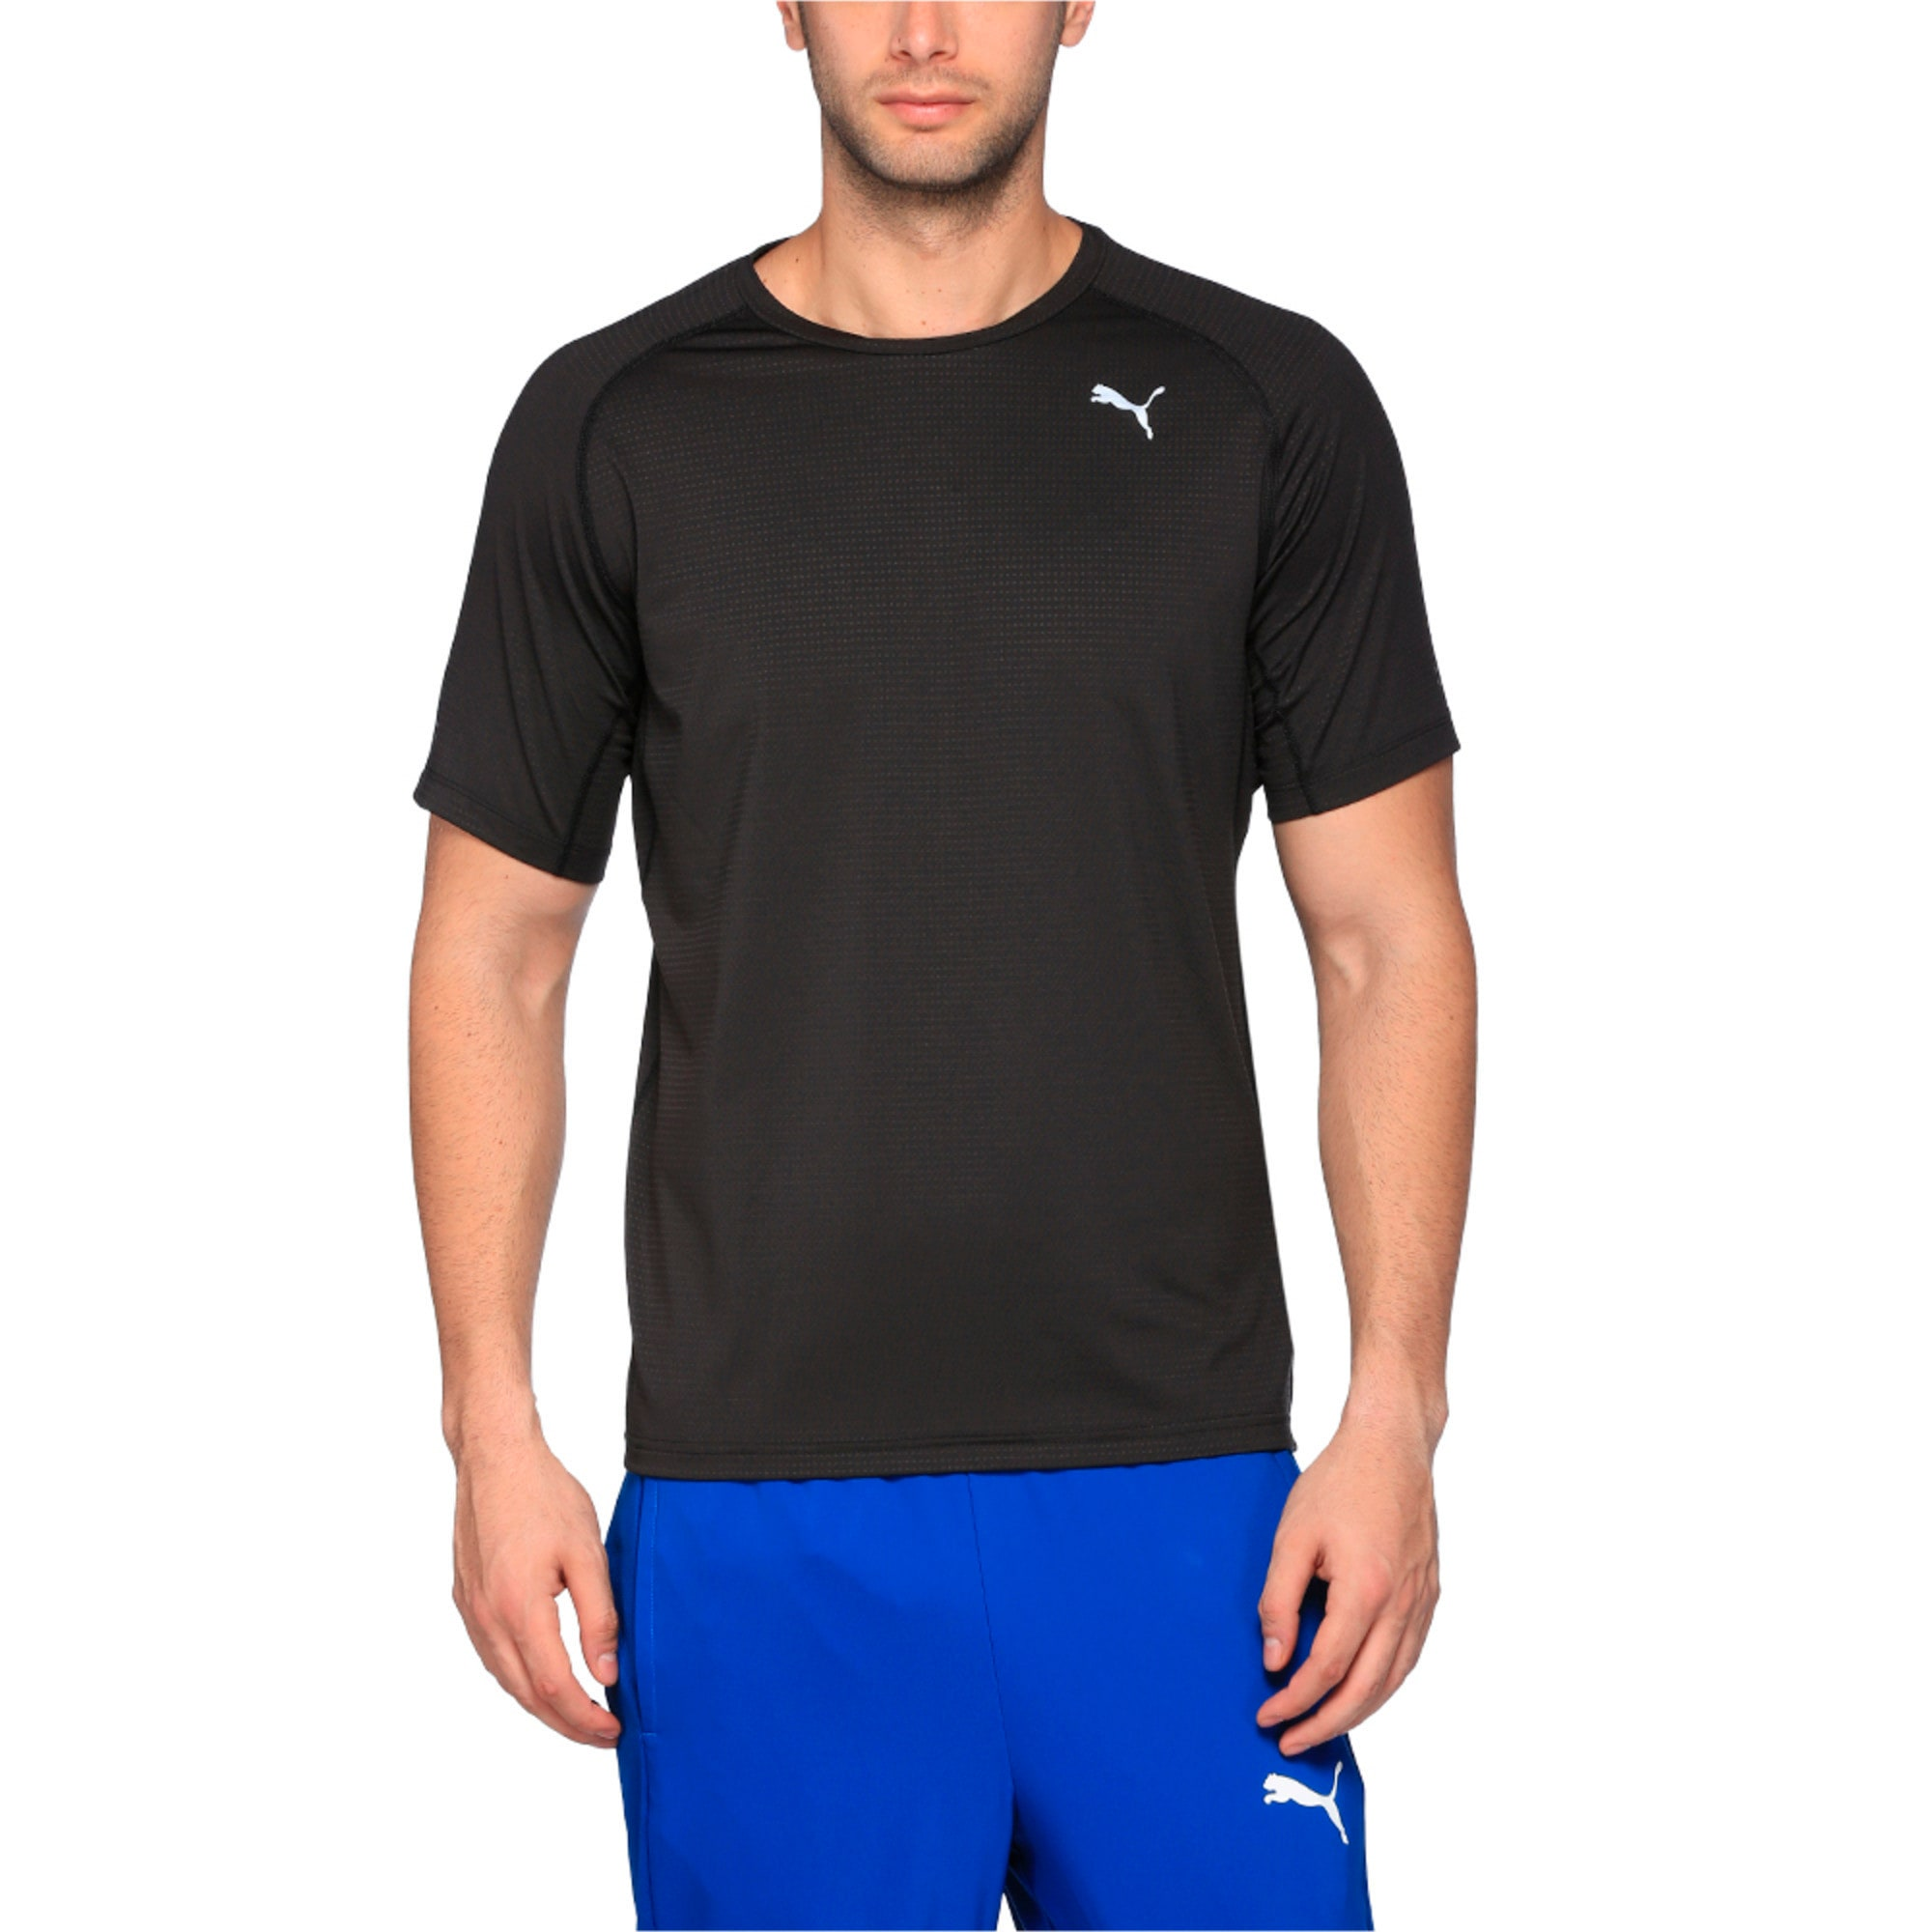 Thumbnail 1 of Running Men's Speed T-Shirt, Puma Black Heather, medium-IND